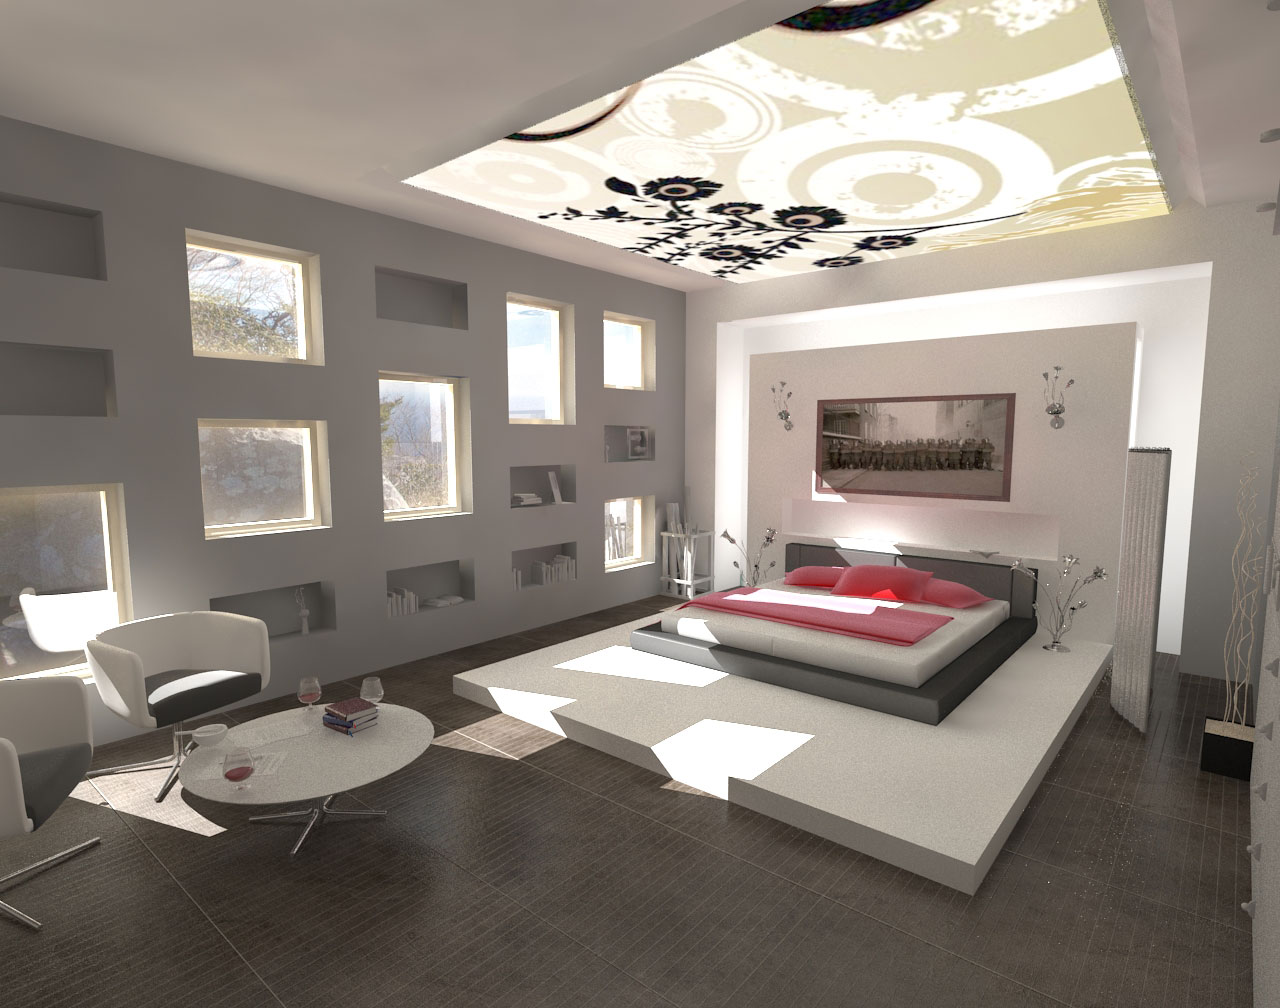 decorations minimalist design modern bedroom interior On modern minimalist interior design style